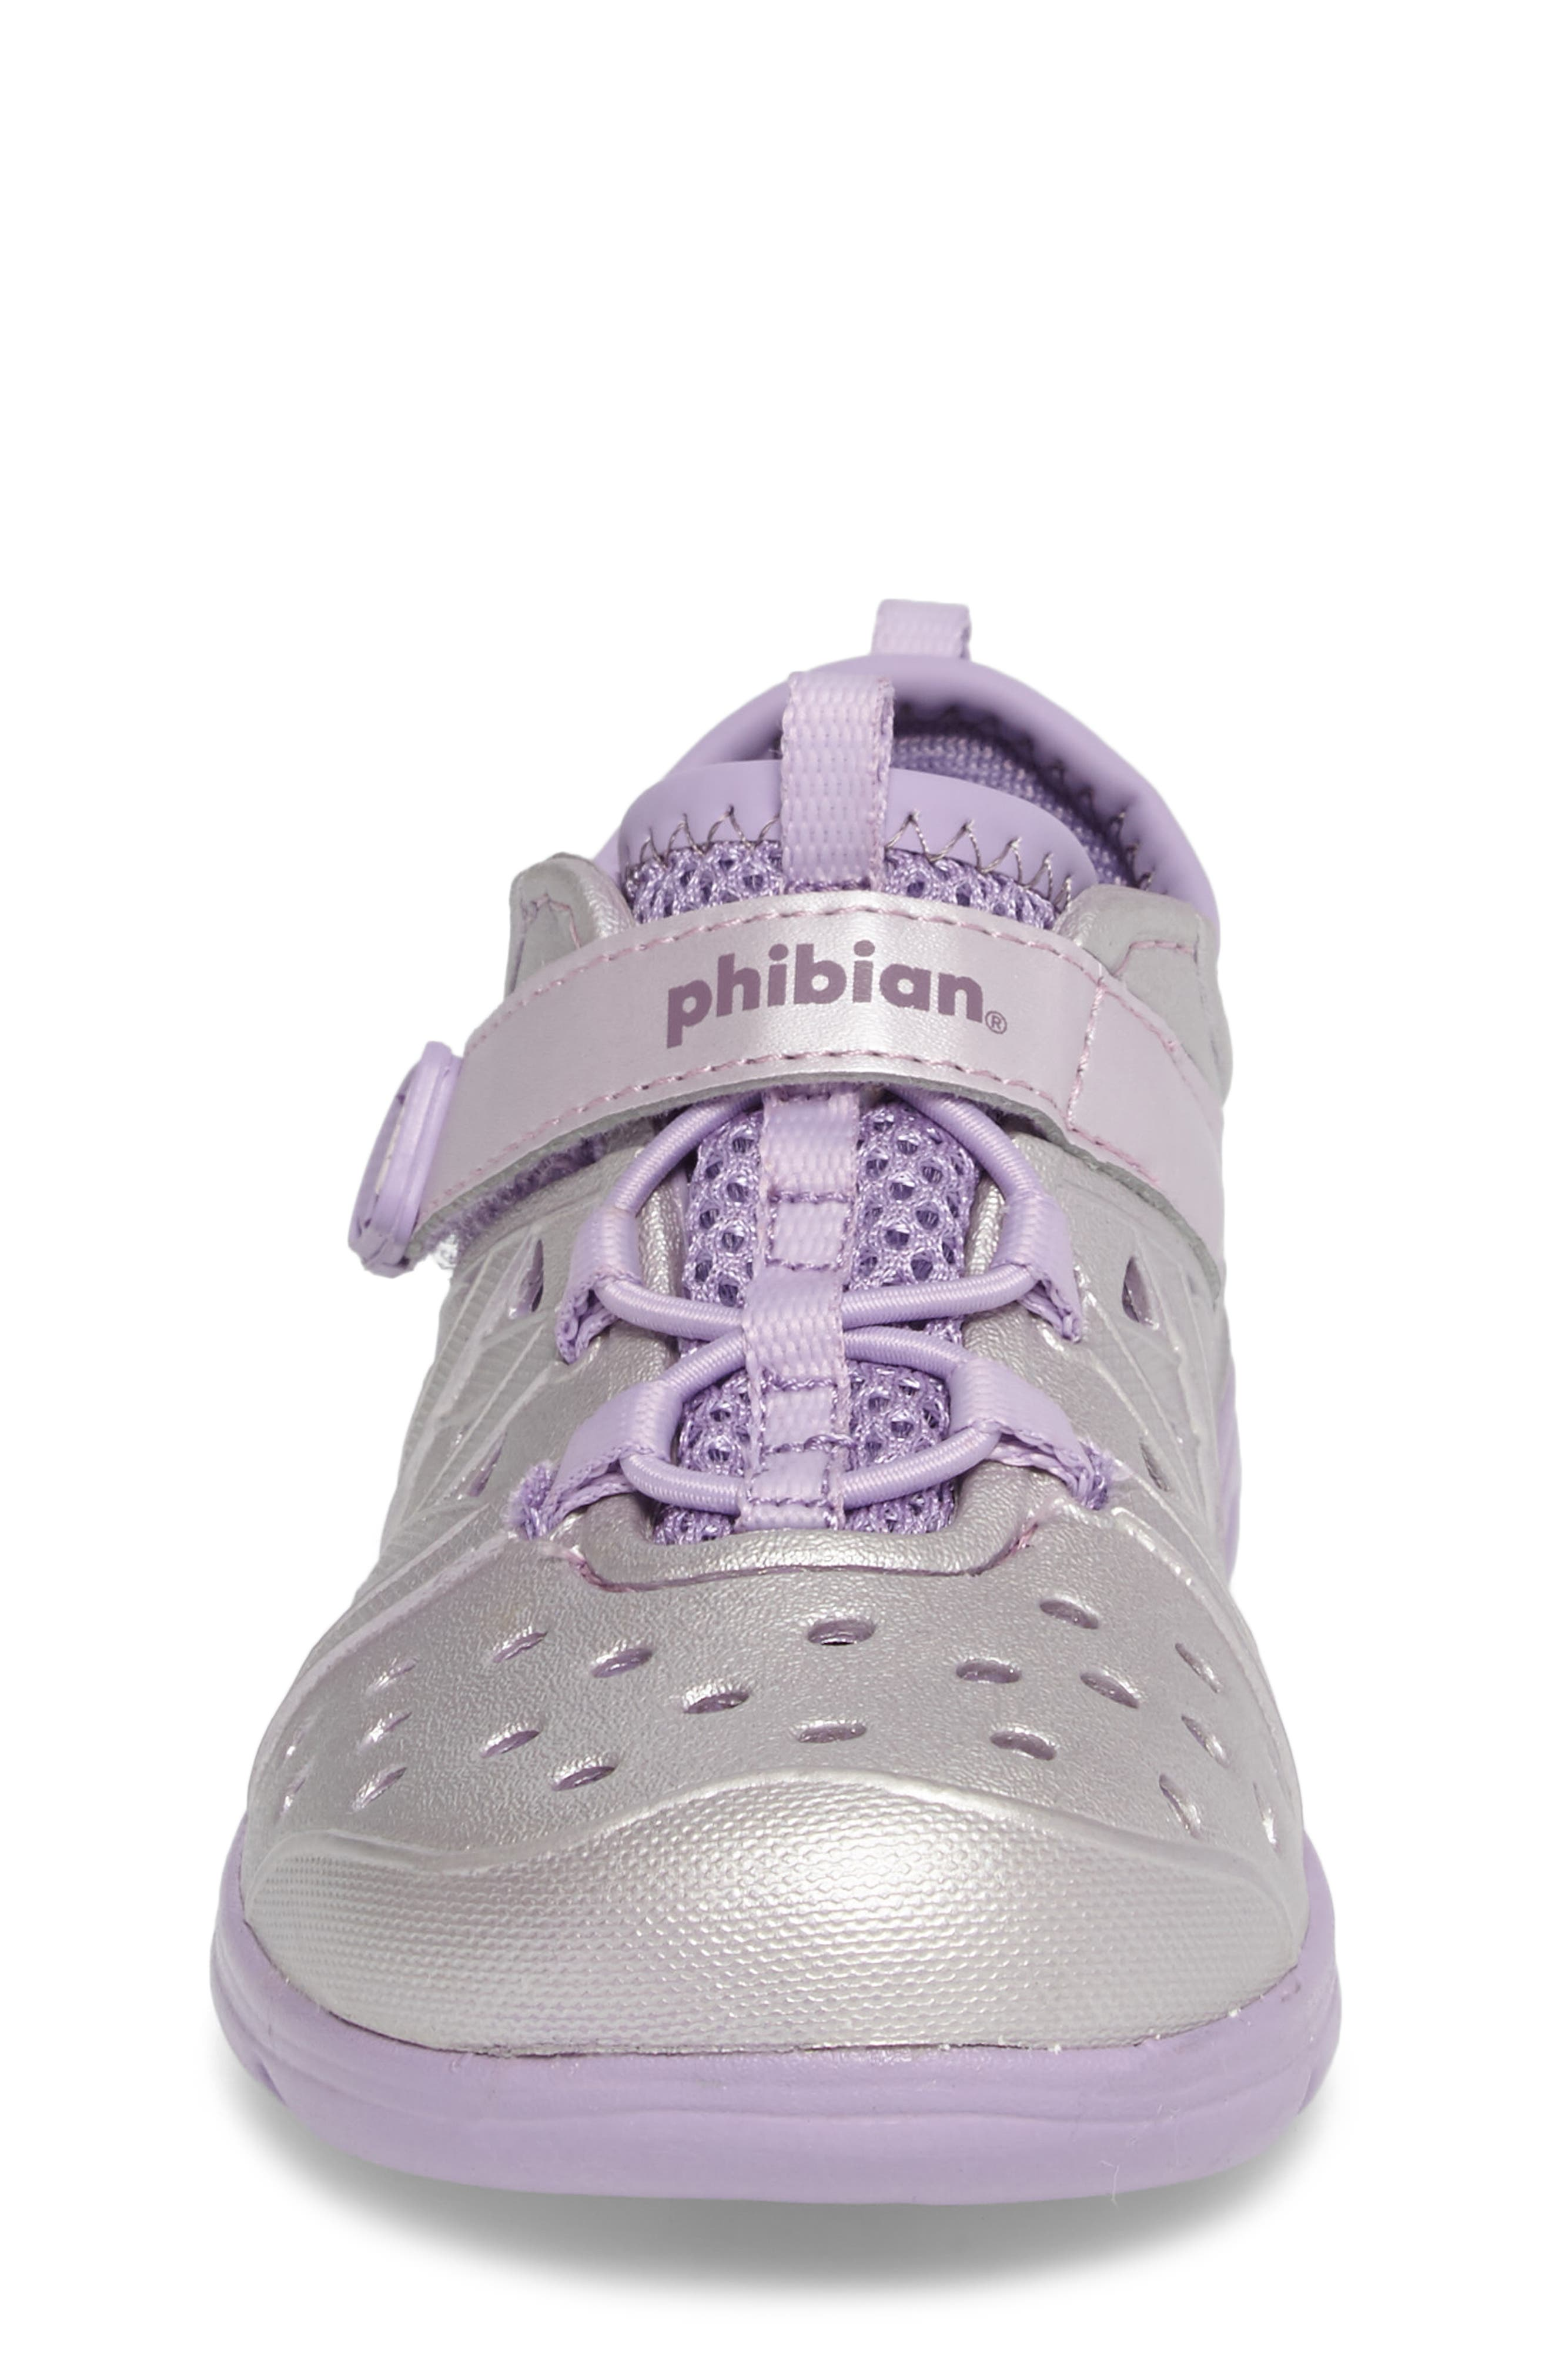 Made2Play<sup>®</sup> Phibian Sneaker,                             Alternate thumbnail 4, color,                             Purple Metallic